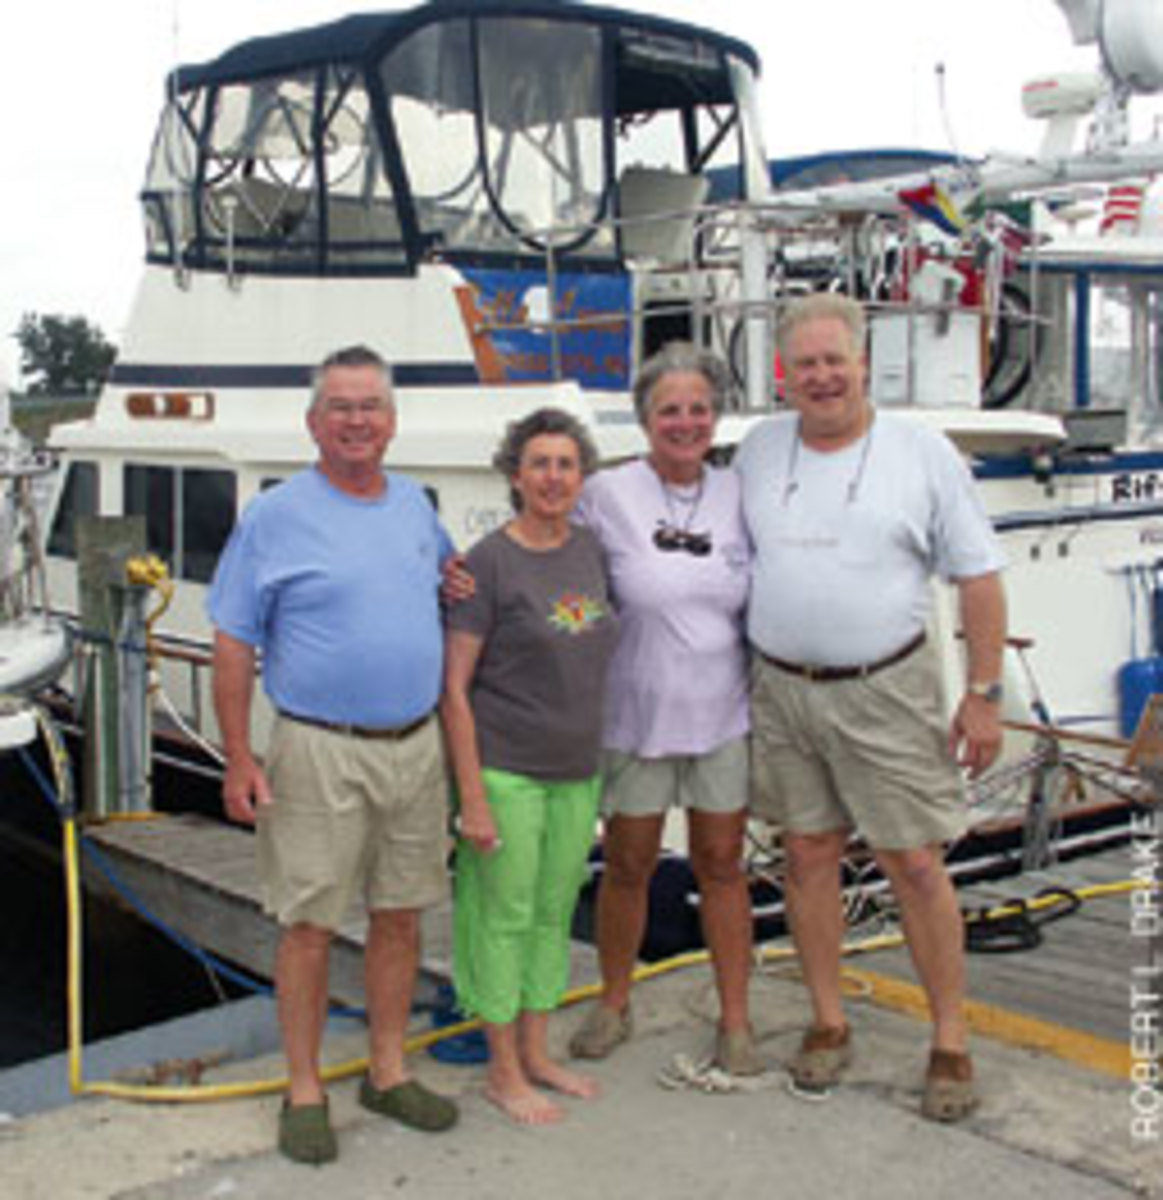 Louis and Diane Wade (right) have cruised thousands of miles on the Great Loop with Robert and Kay Creech.